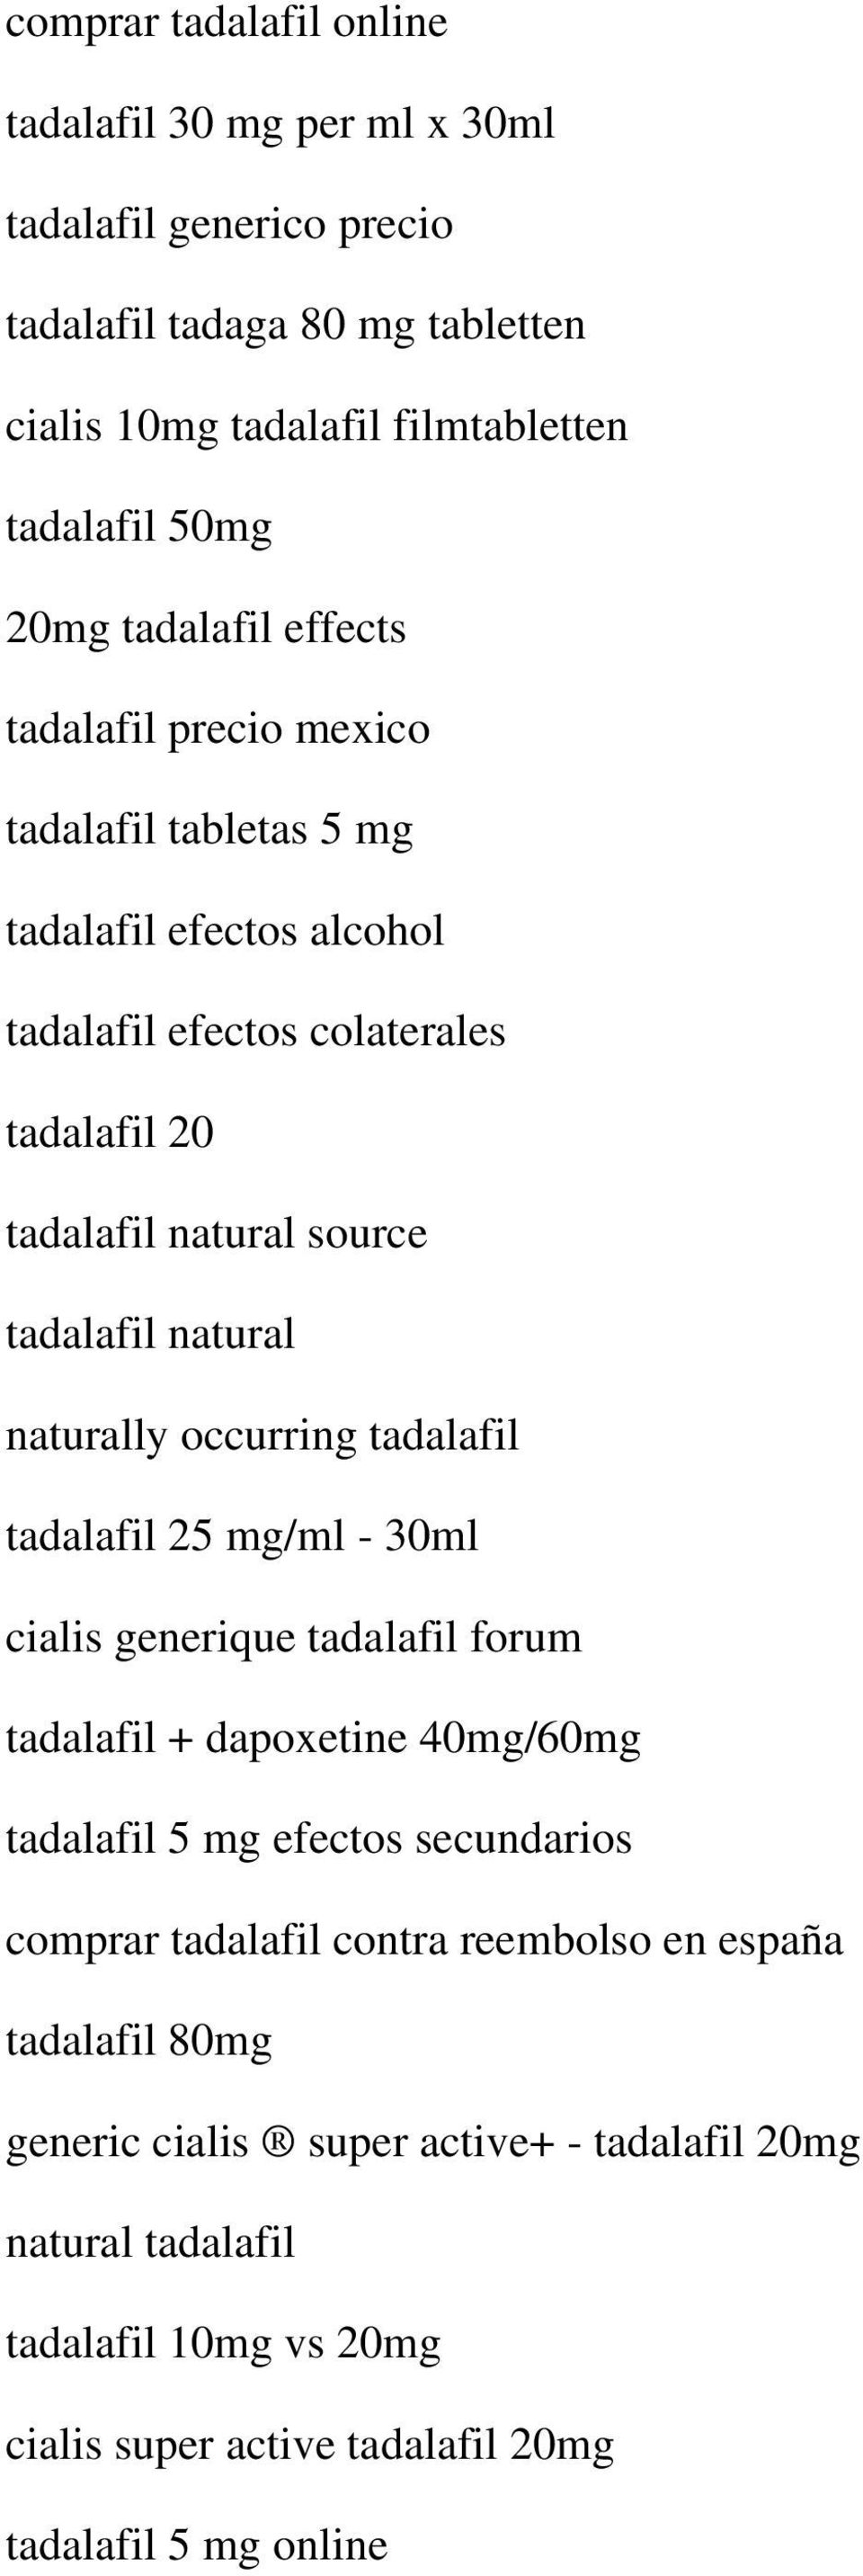 natural naturally occurring tadalafil tadalafil 25 mg/ml - 30ml cialis generique tadalafil forum tadalafil + dapoxetine 40mg/60mg tadalafil 5 mg efectos secundarios comprar